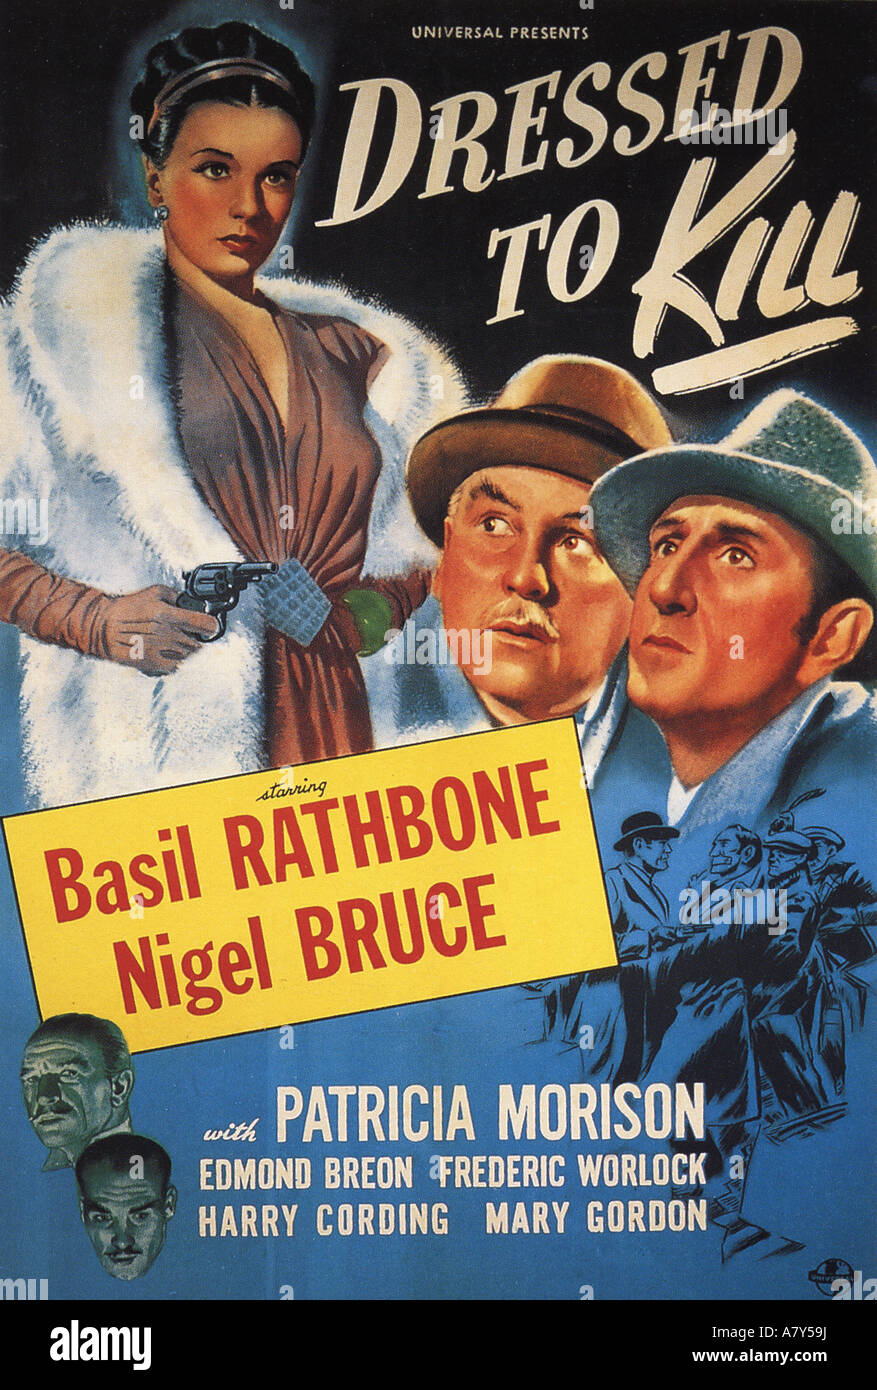 DRESSED TO KILL poster for 1946 Universal film with Basil Rathbone and Nigel Bruce - Stock Image